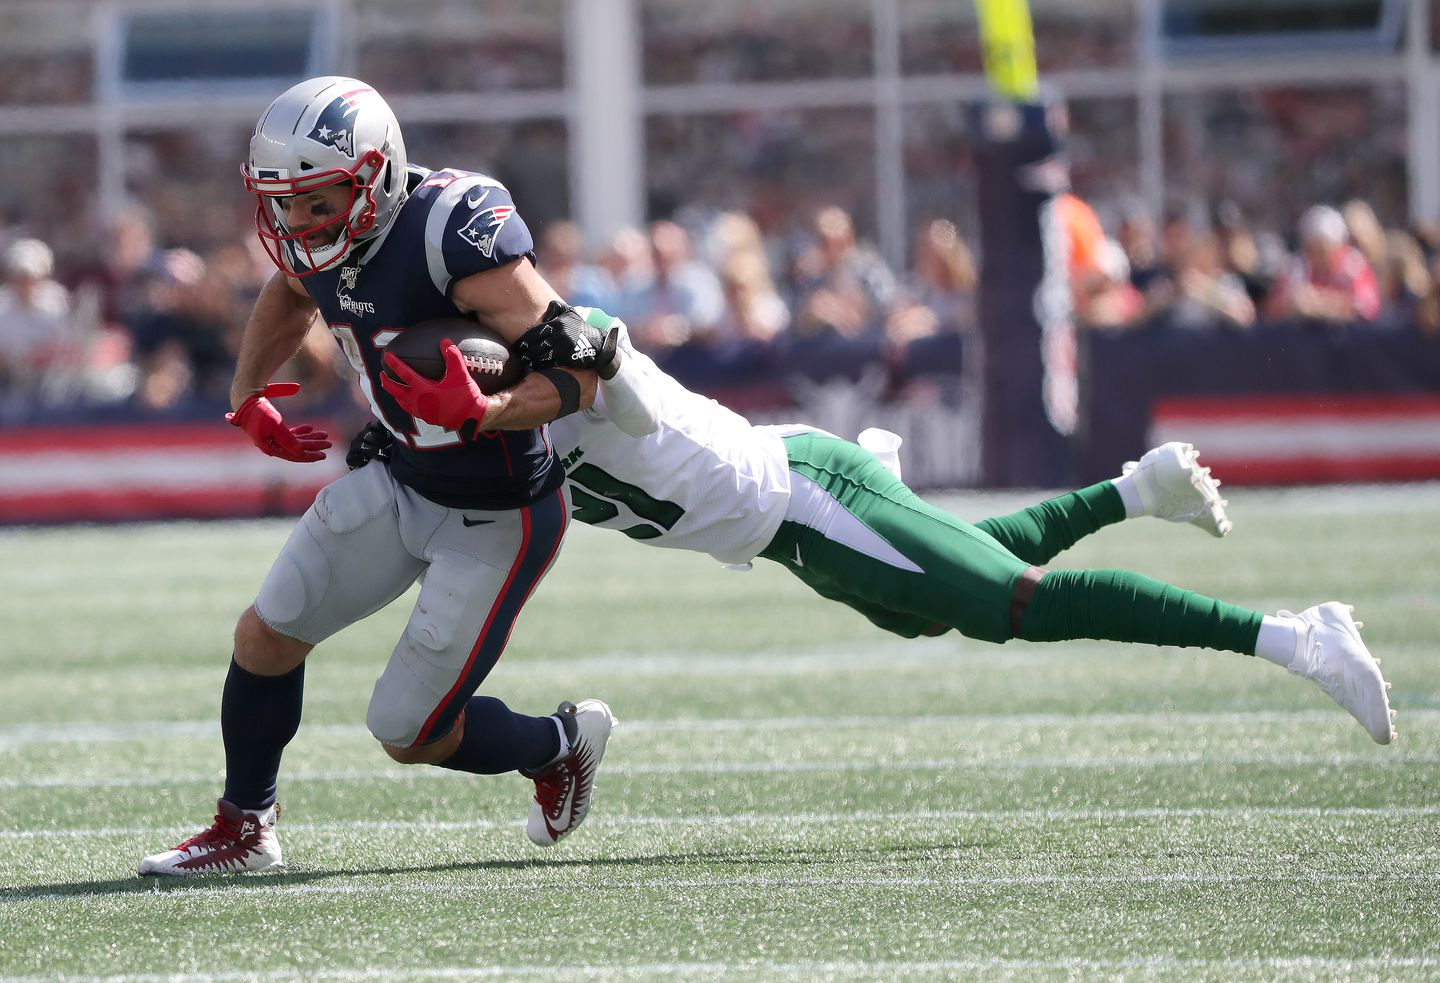 Julian Edelman Out Vs Jets With Chest Injury The Boston Globe